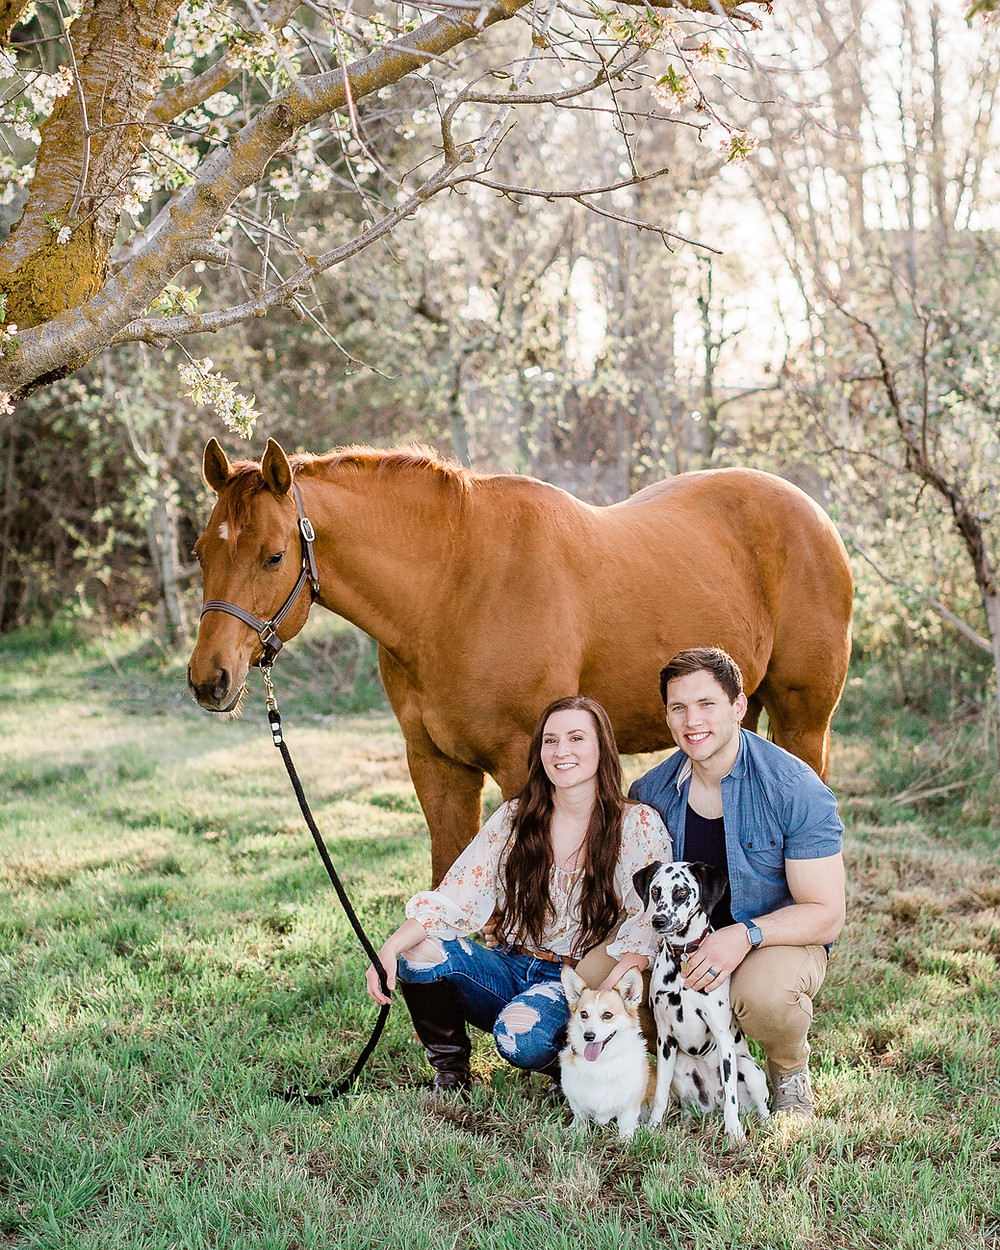 Family photo with horse, 2 dogs, and married couple